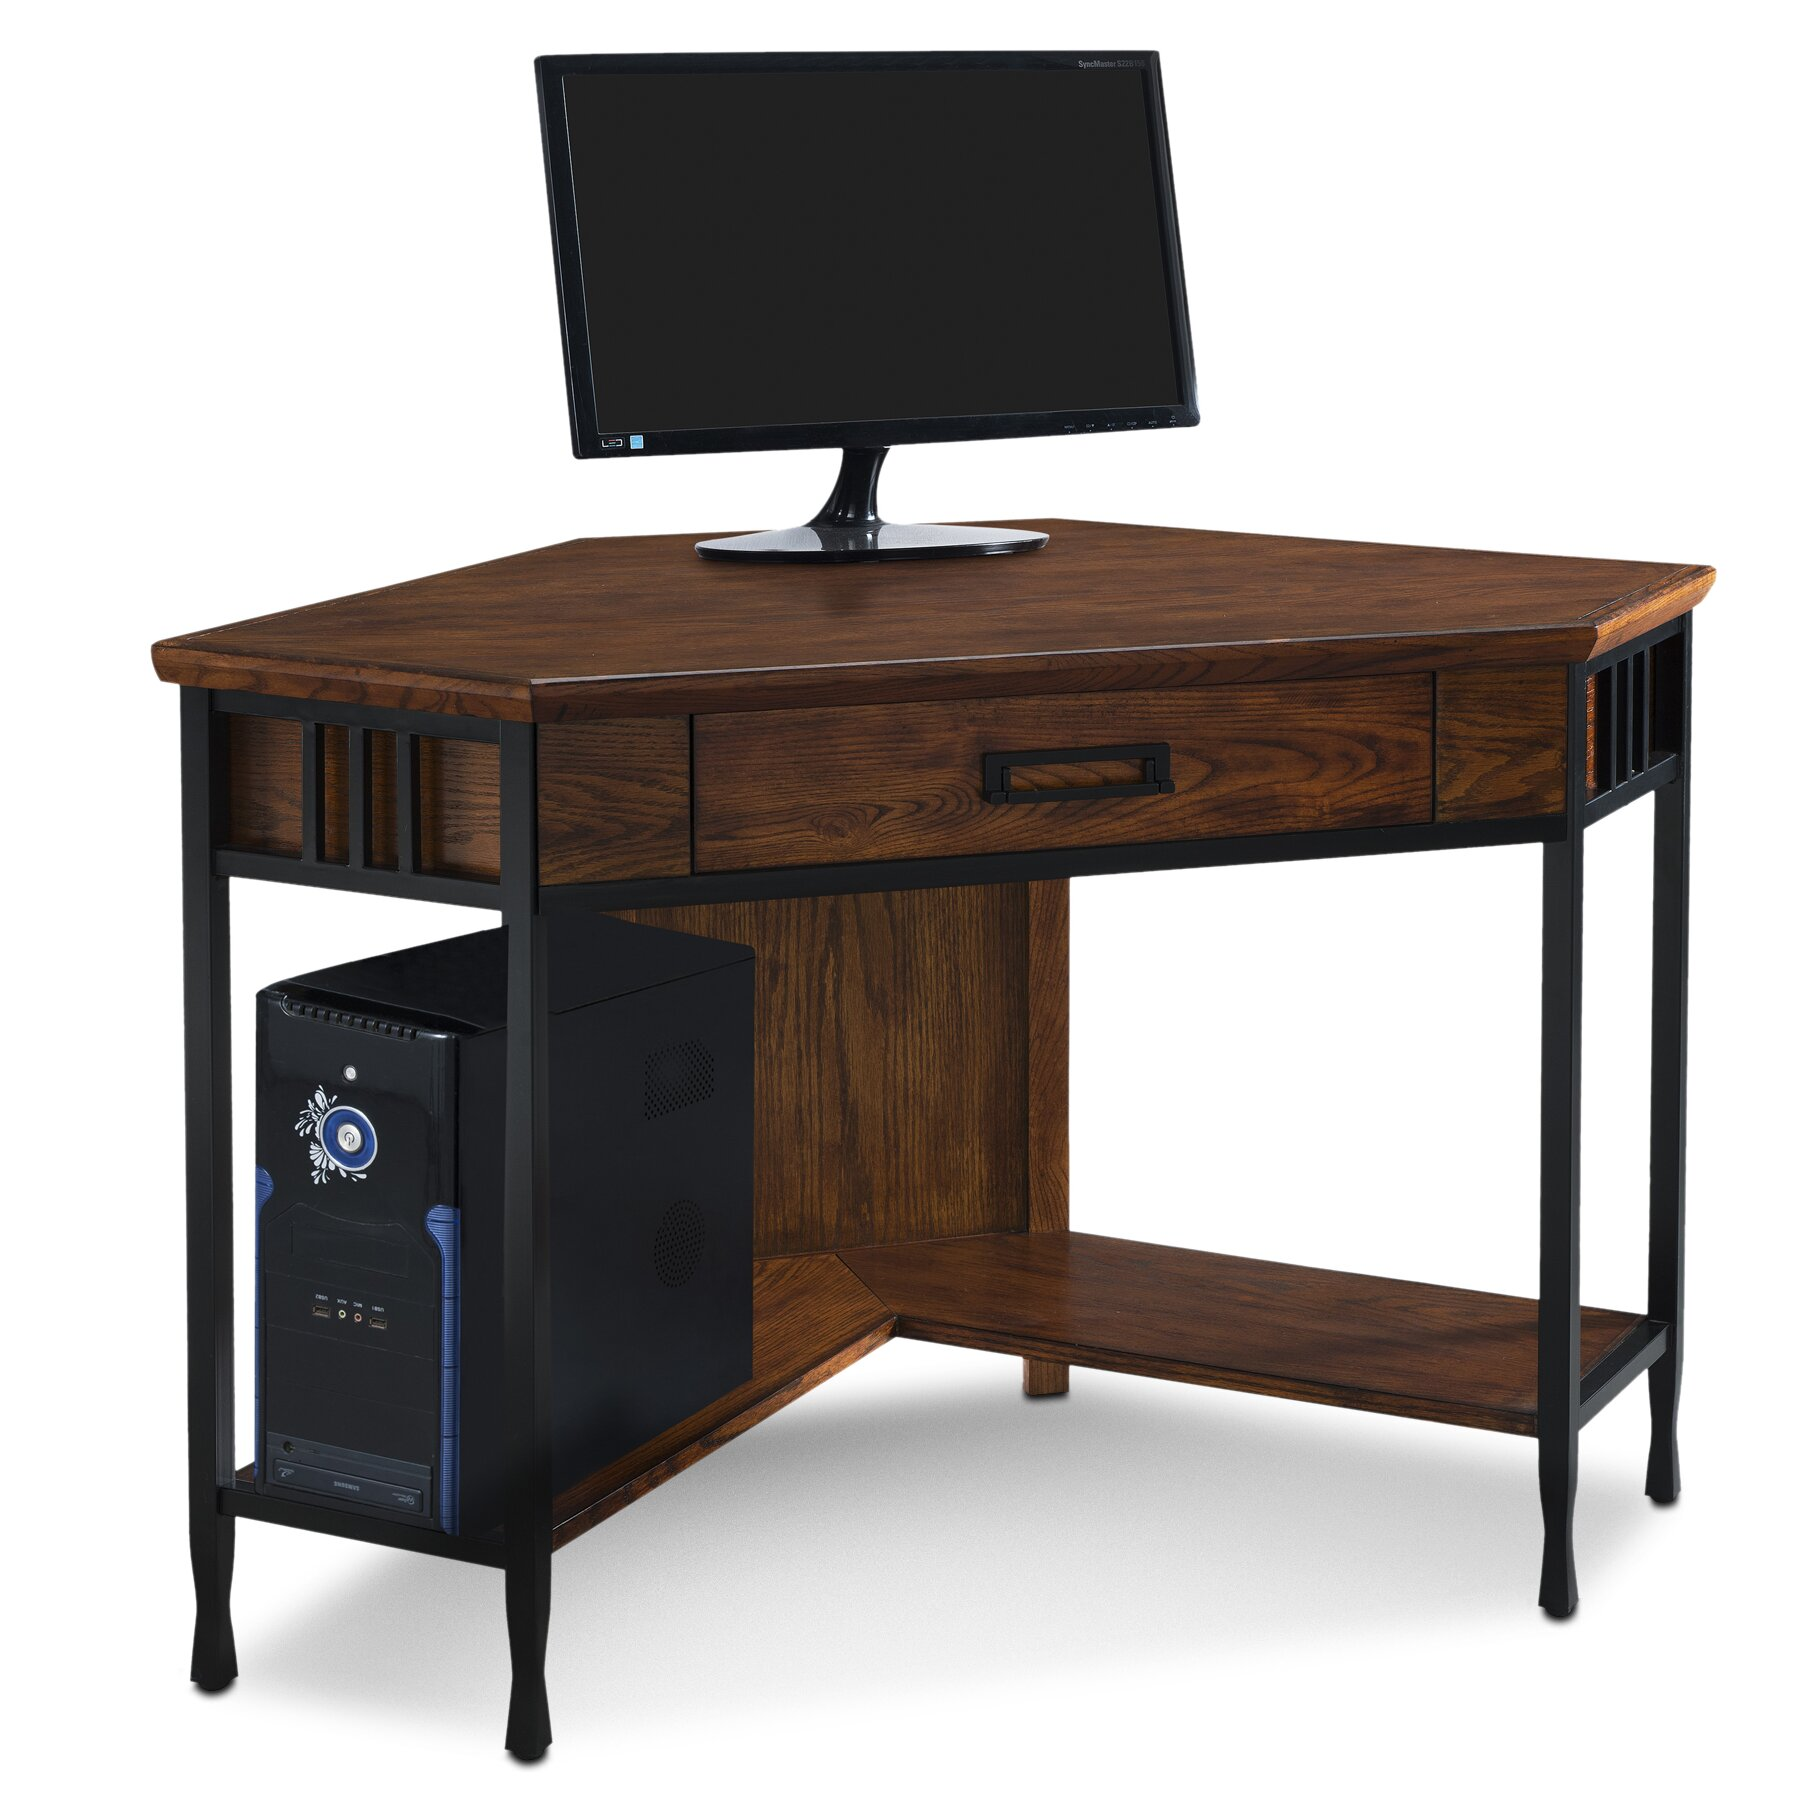 Loon peak clearsky computer desk reviews Peak office furniture